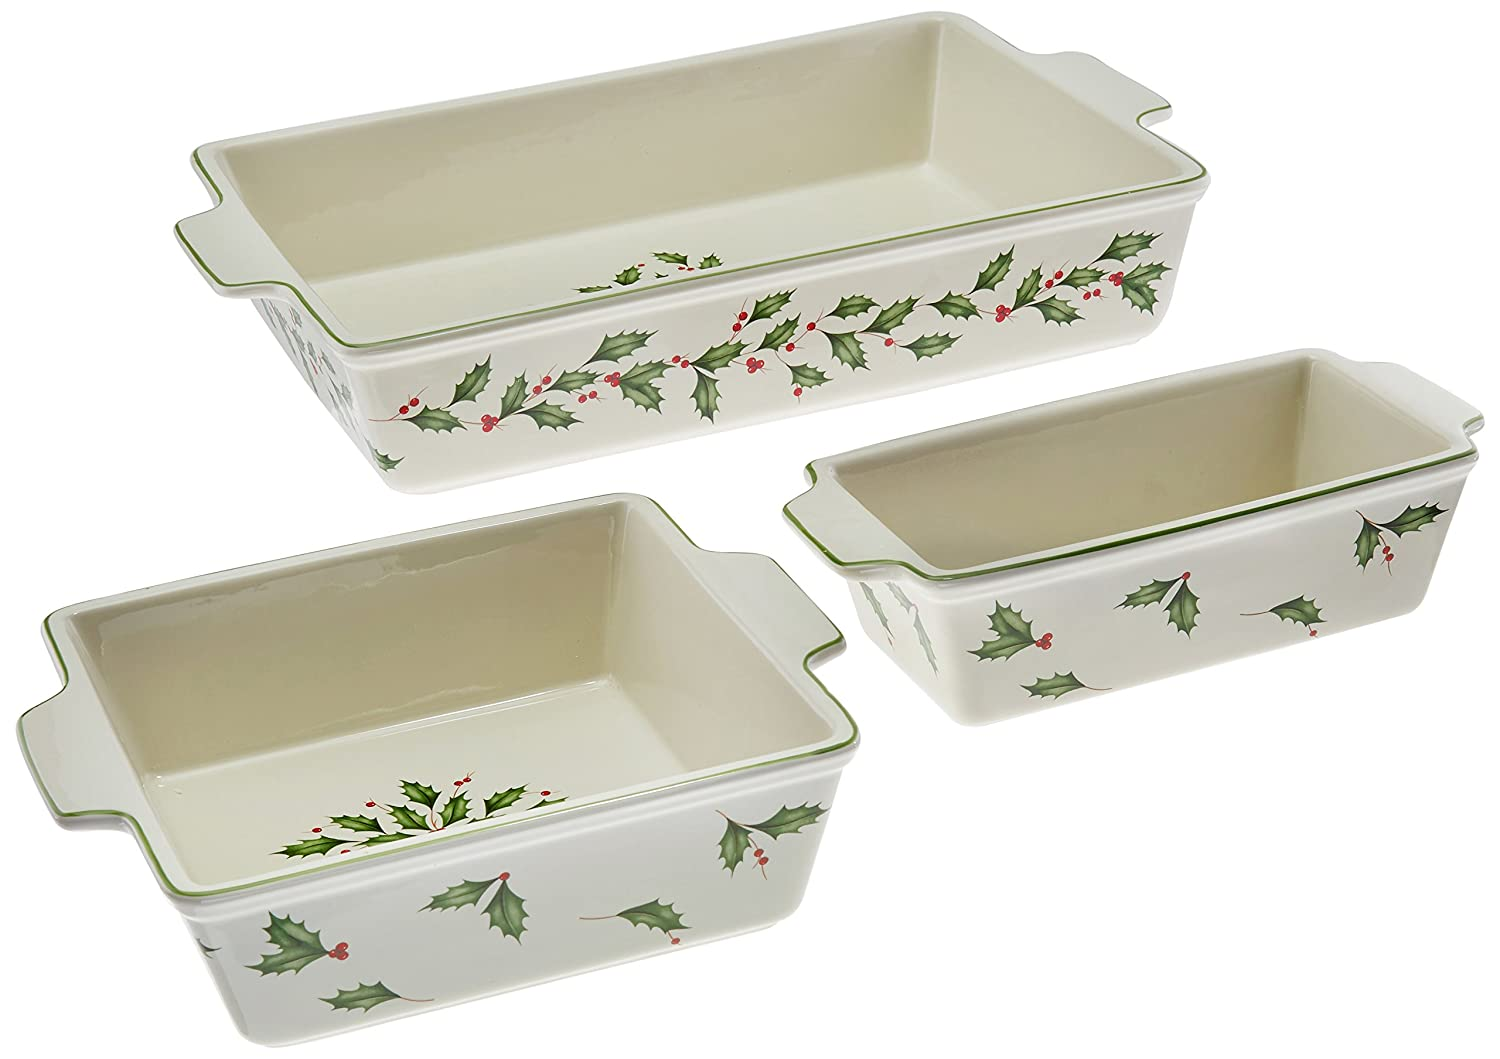 Lenox 867265 Holiday Bakeware Set